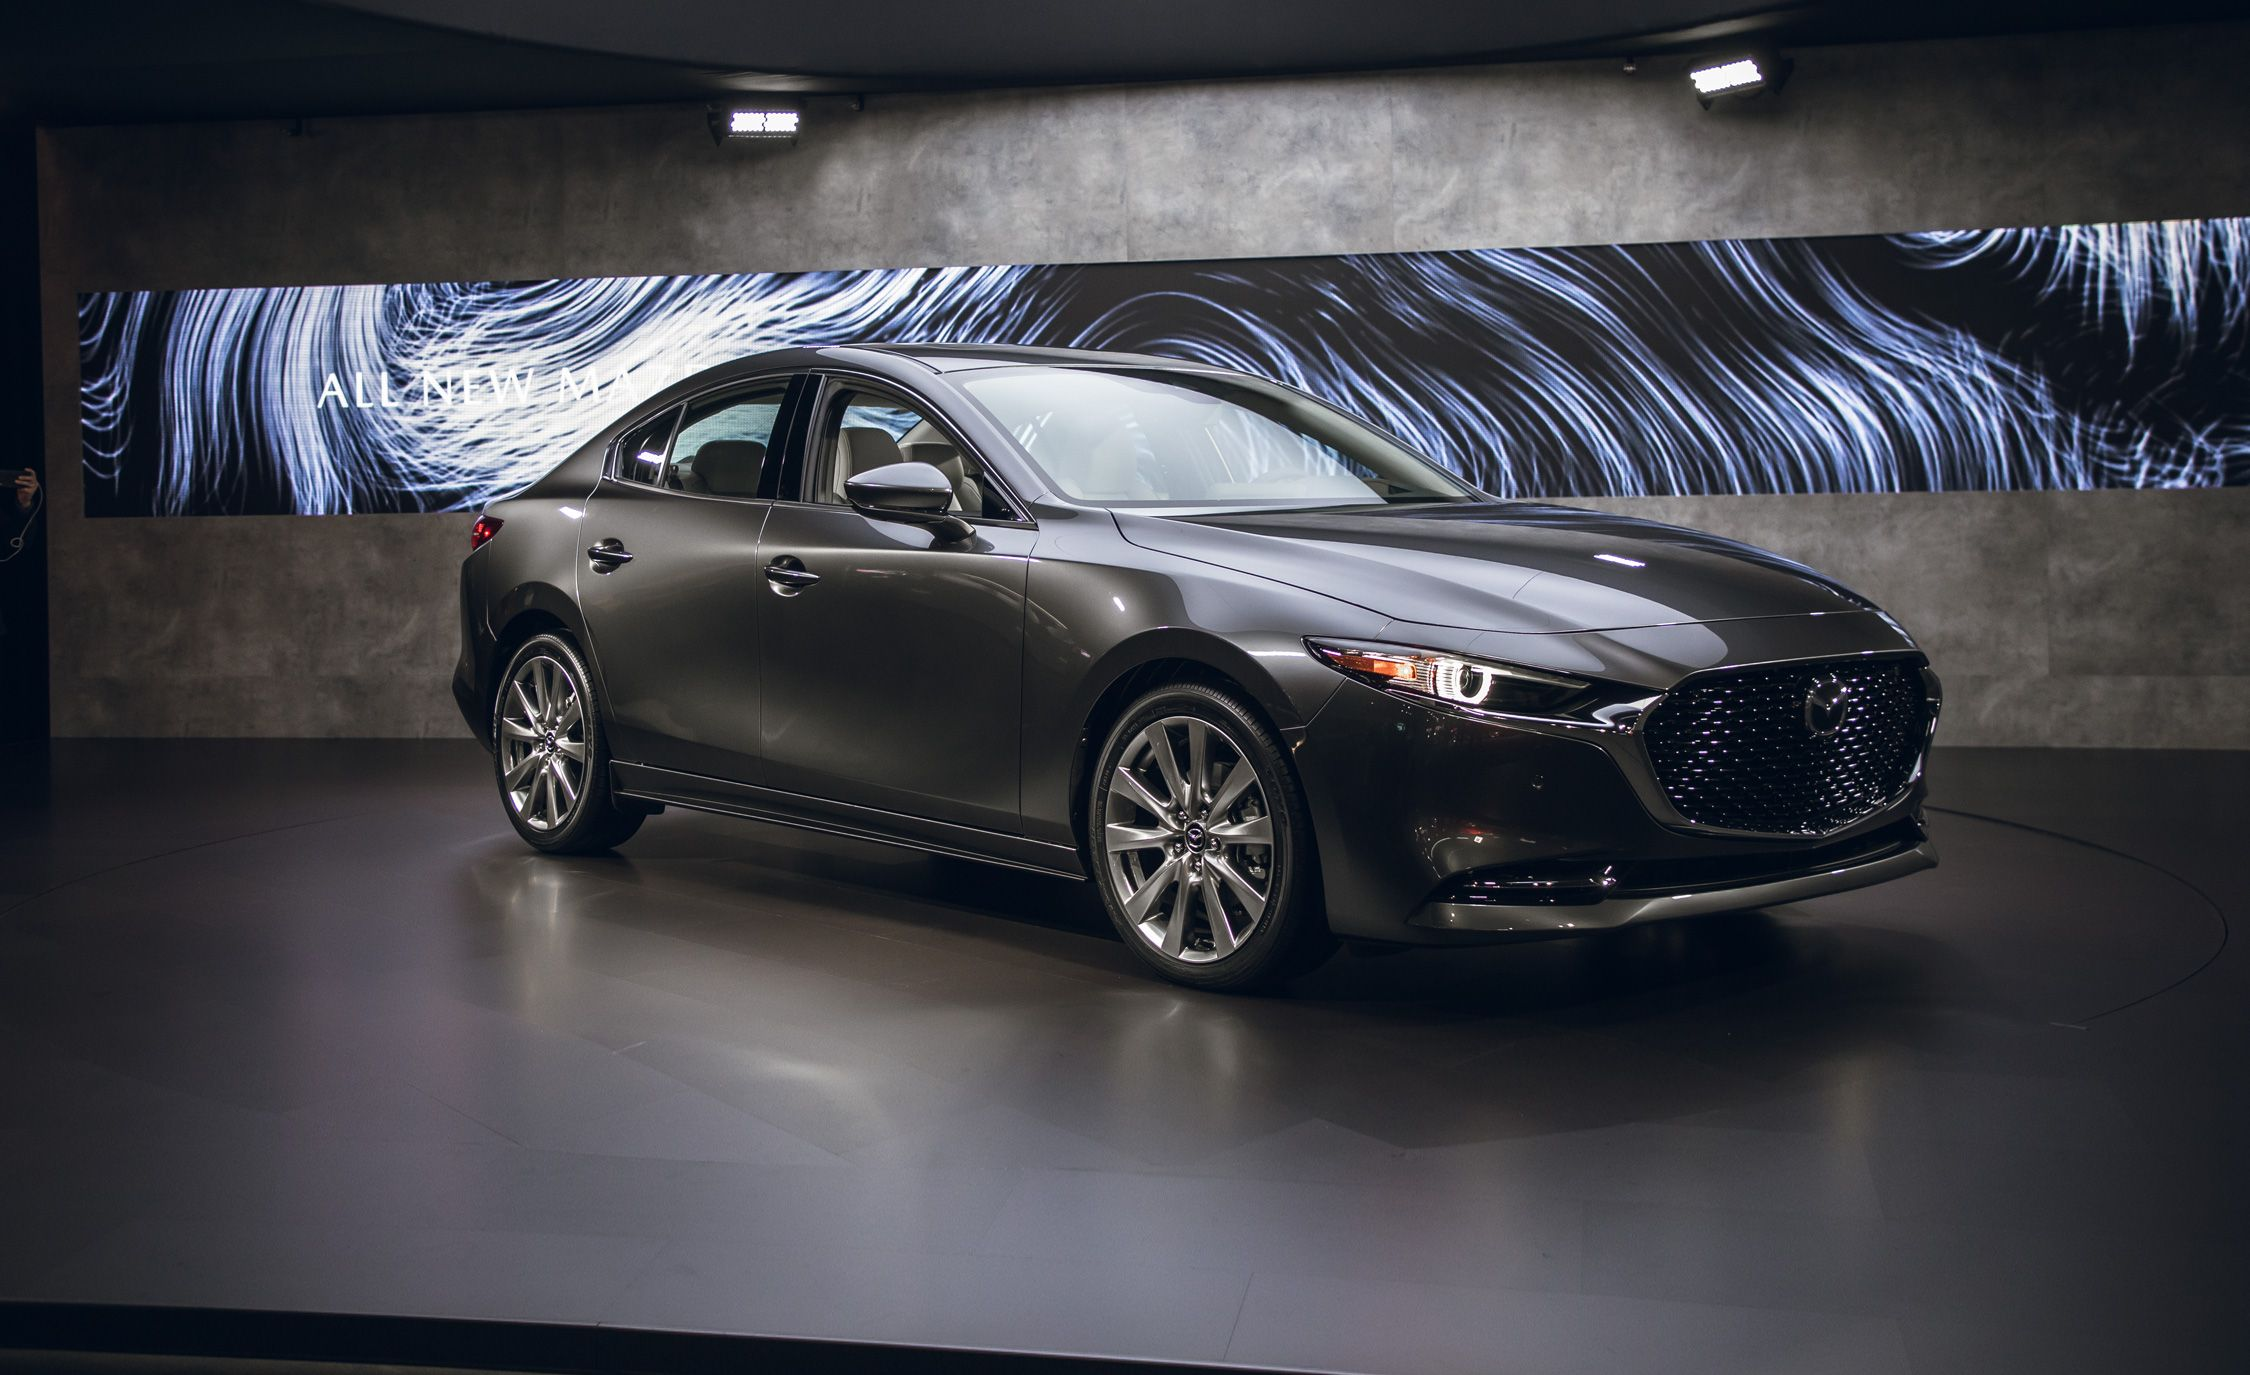 2019 Mazda 3 Revealed Skyactiv Engines Newly Available